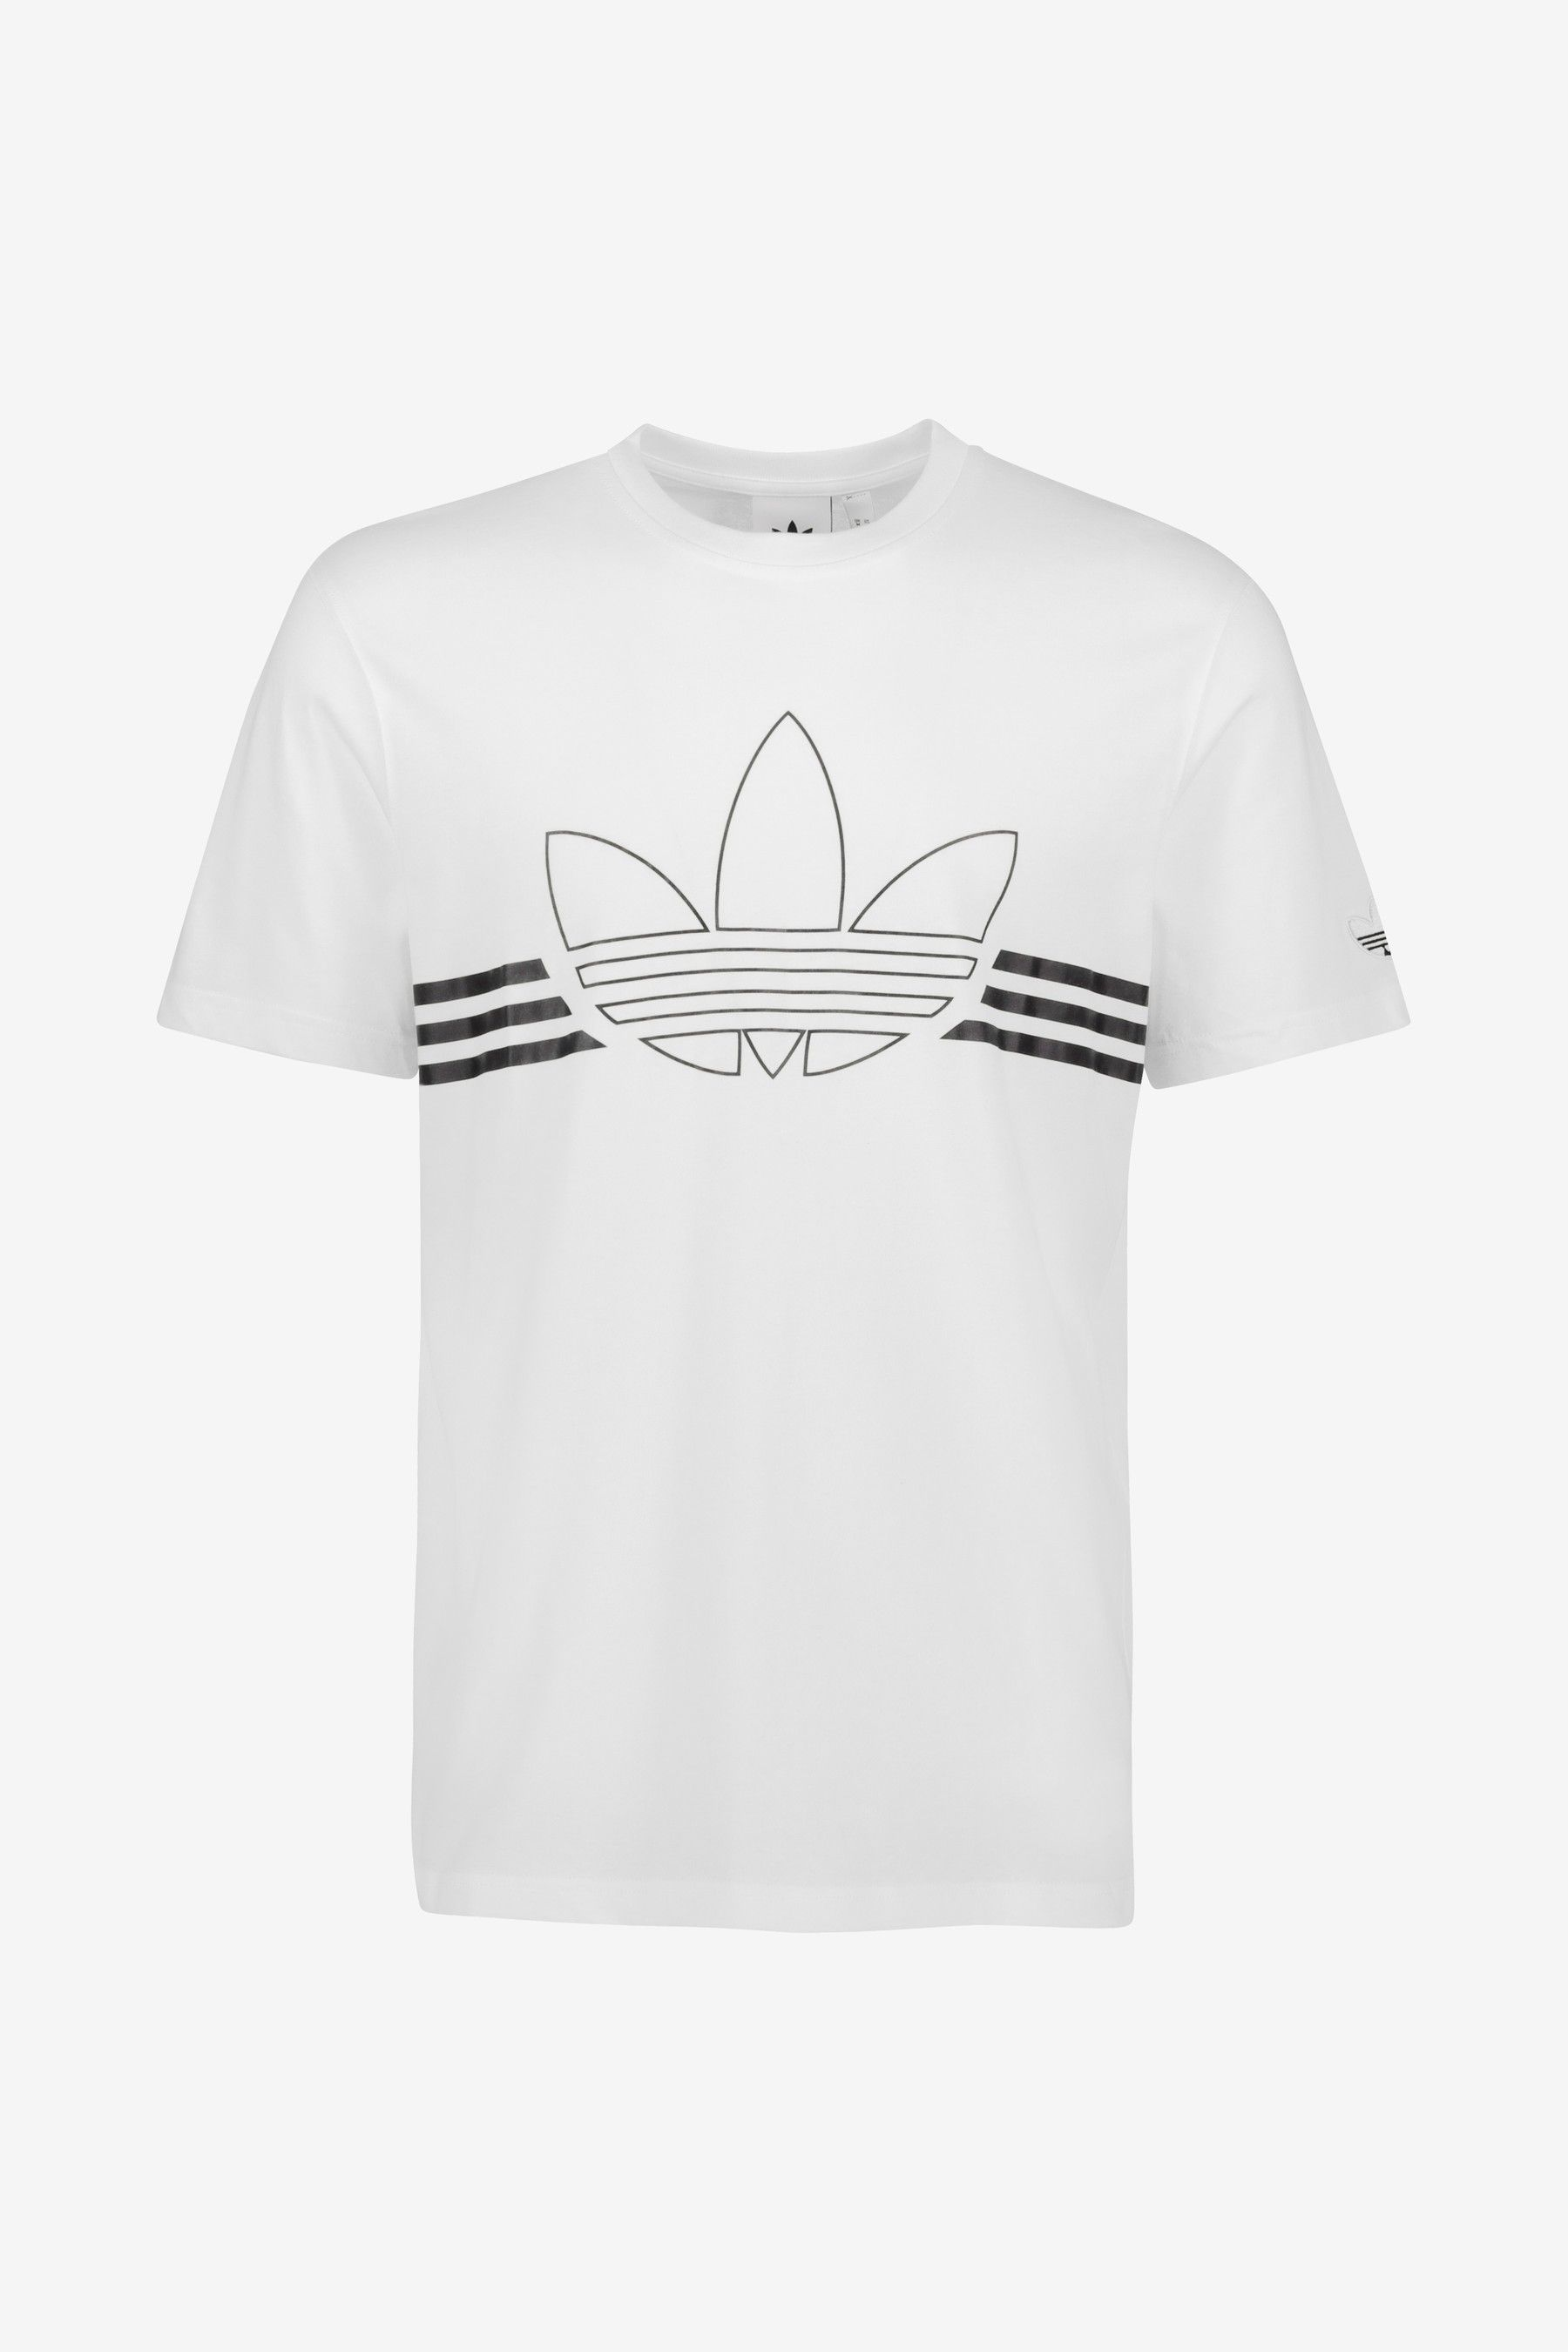 adidas t shirt online store india